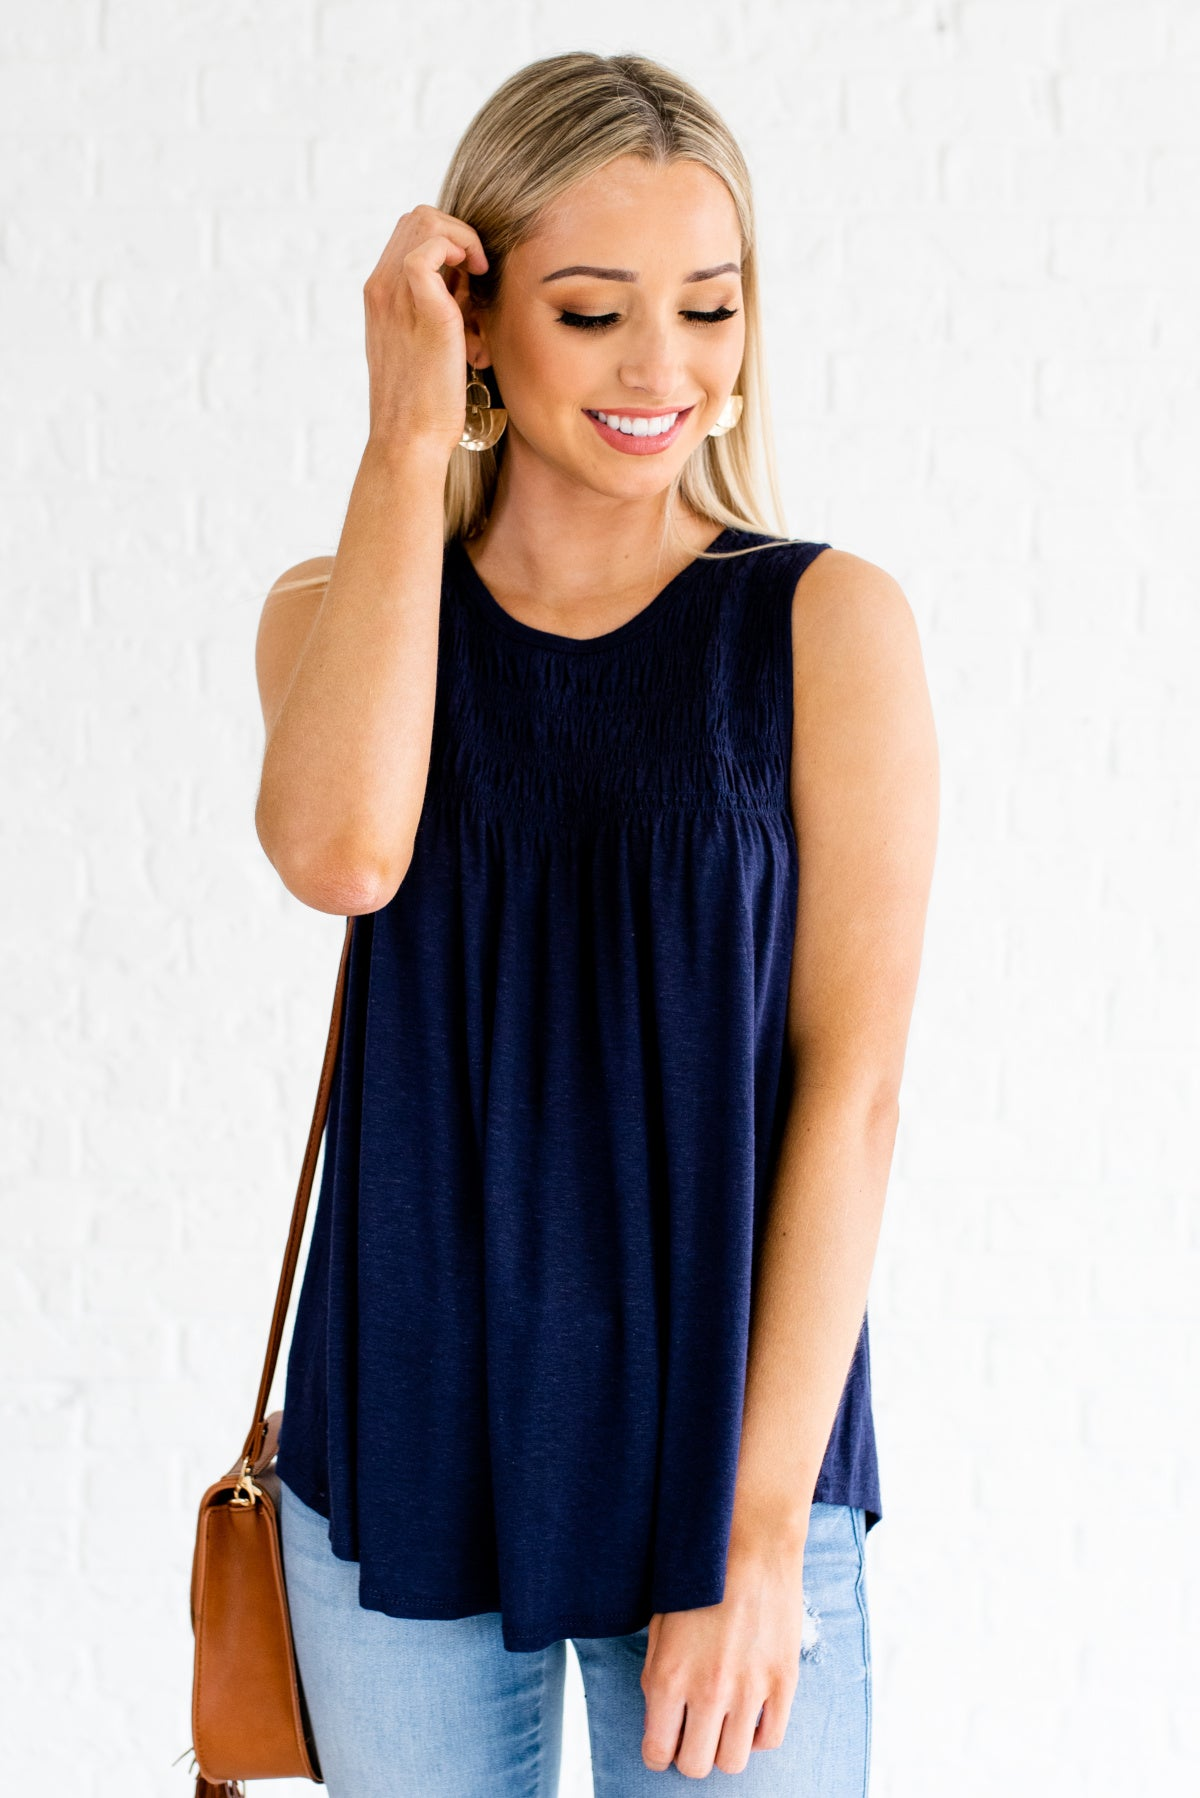 Navy Blue Smoked Bodice Boutique Tops for Women